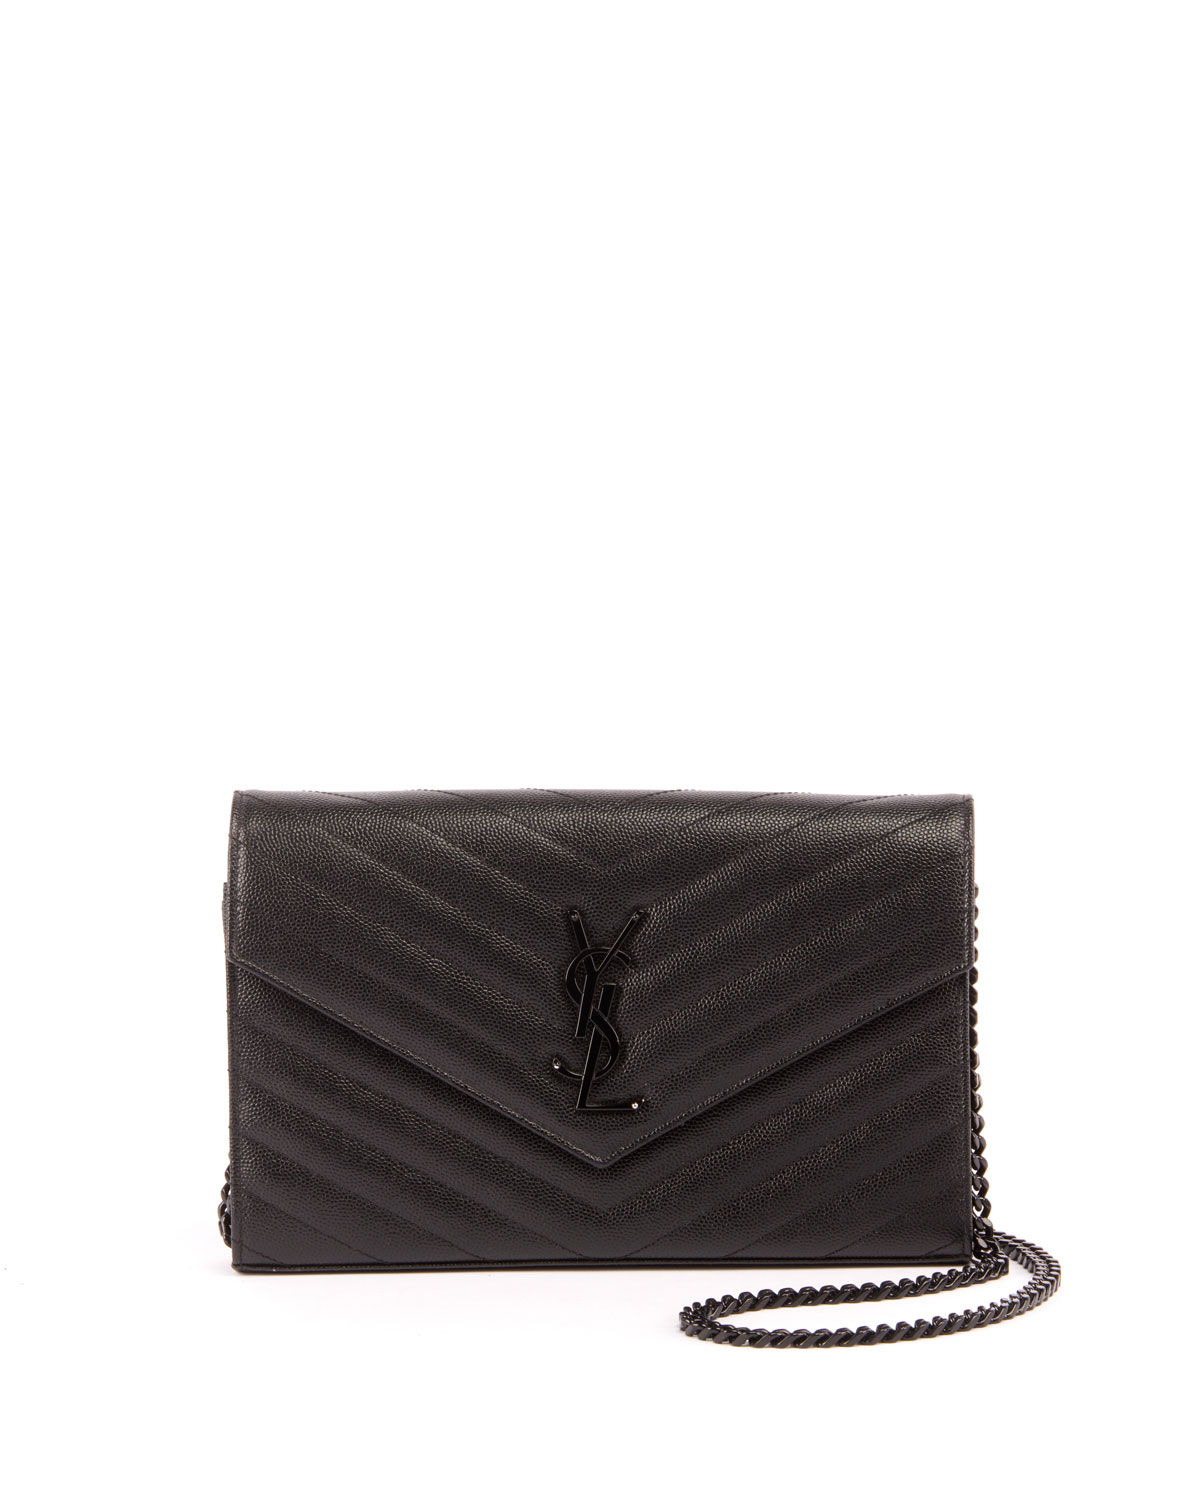 2040601fa53 Saint Laurent Monogram YSL Small Matelasse Envelope Chain Wallet, Black